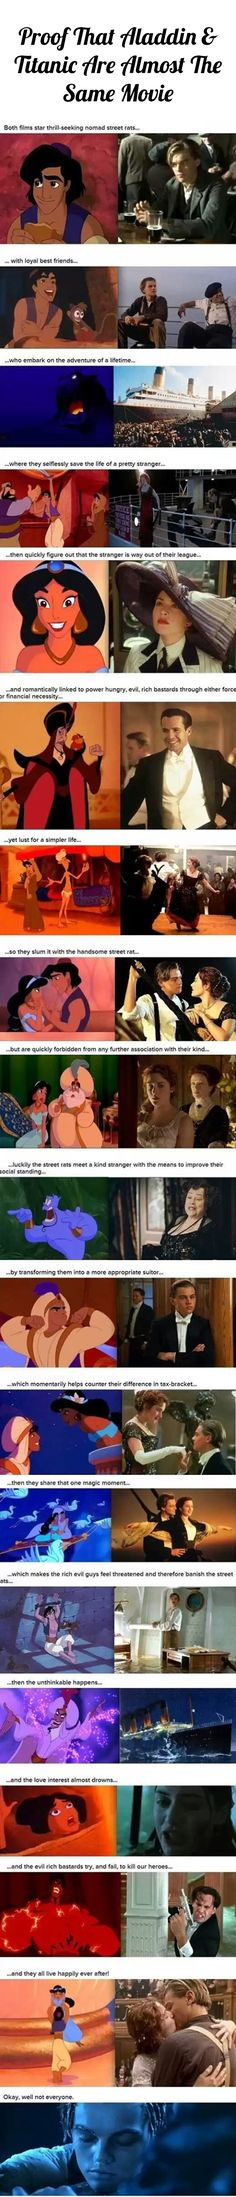 proof that aladdin and titanic are the same movie